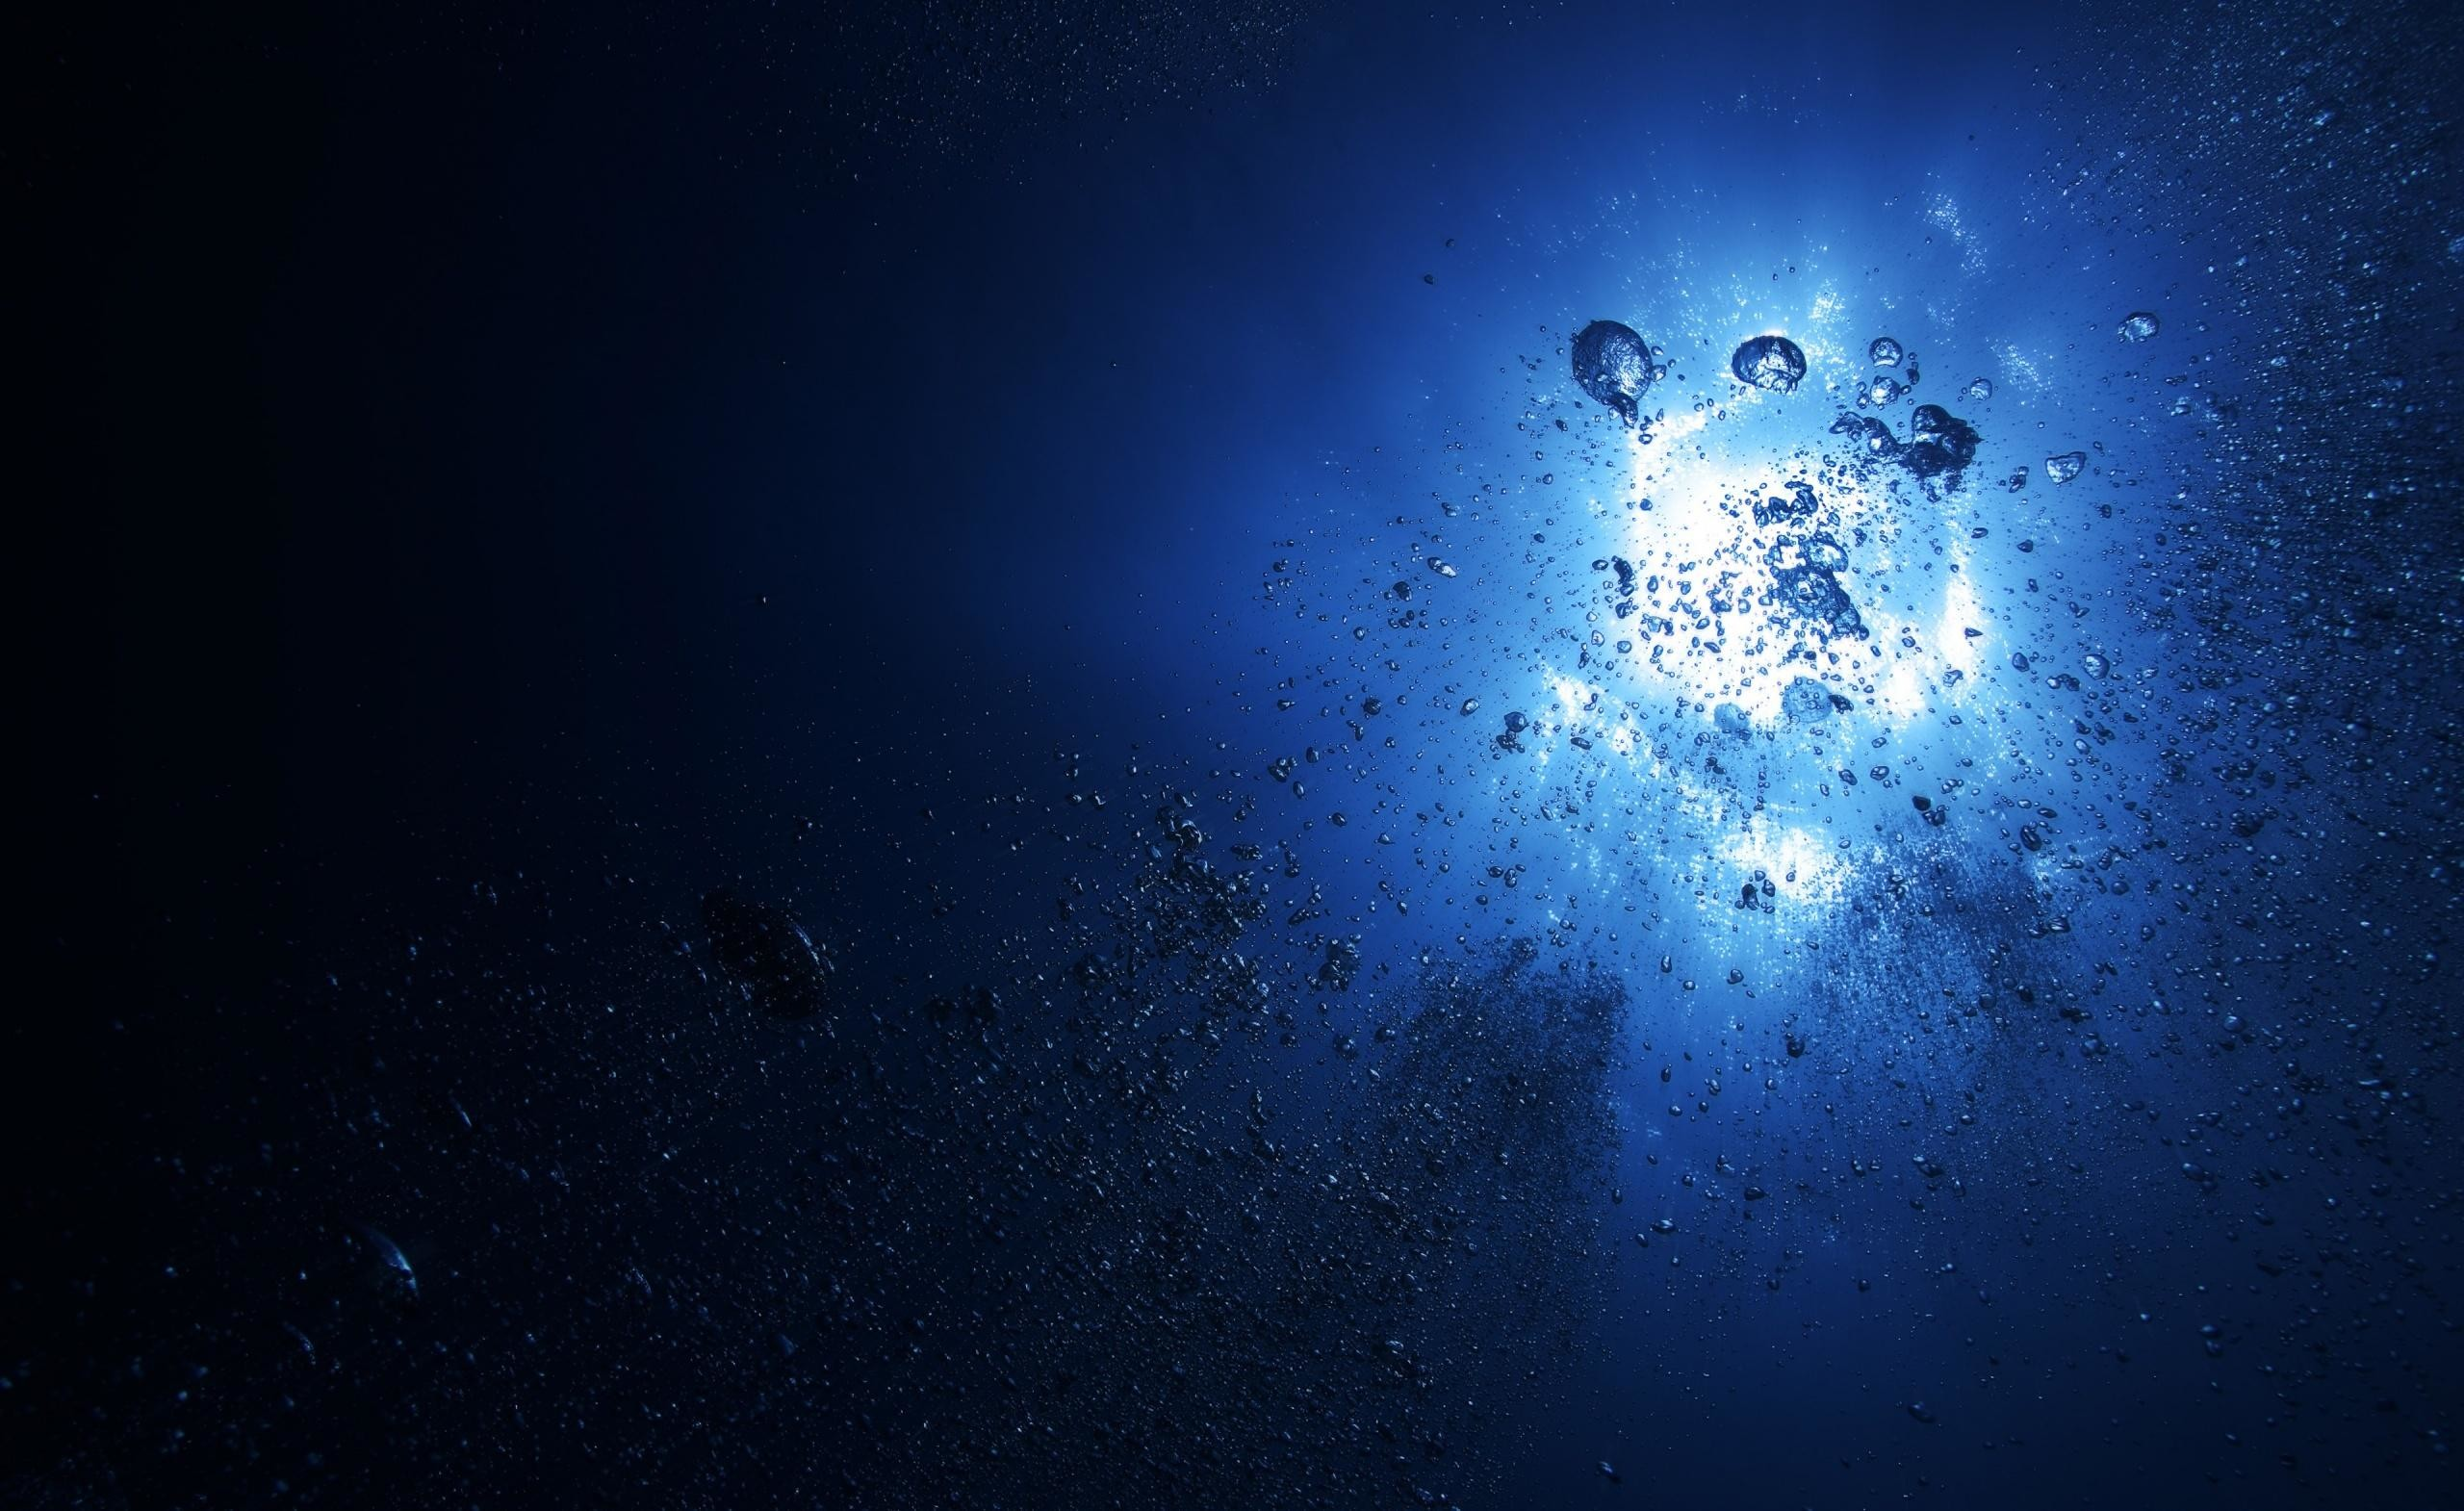 3840x2160 Abstract Animation Of Water Bubble Stream Fluid Particle Flowing Or Shooting From Left To Right